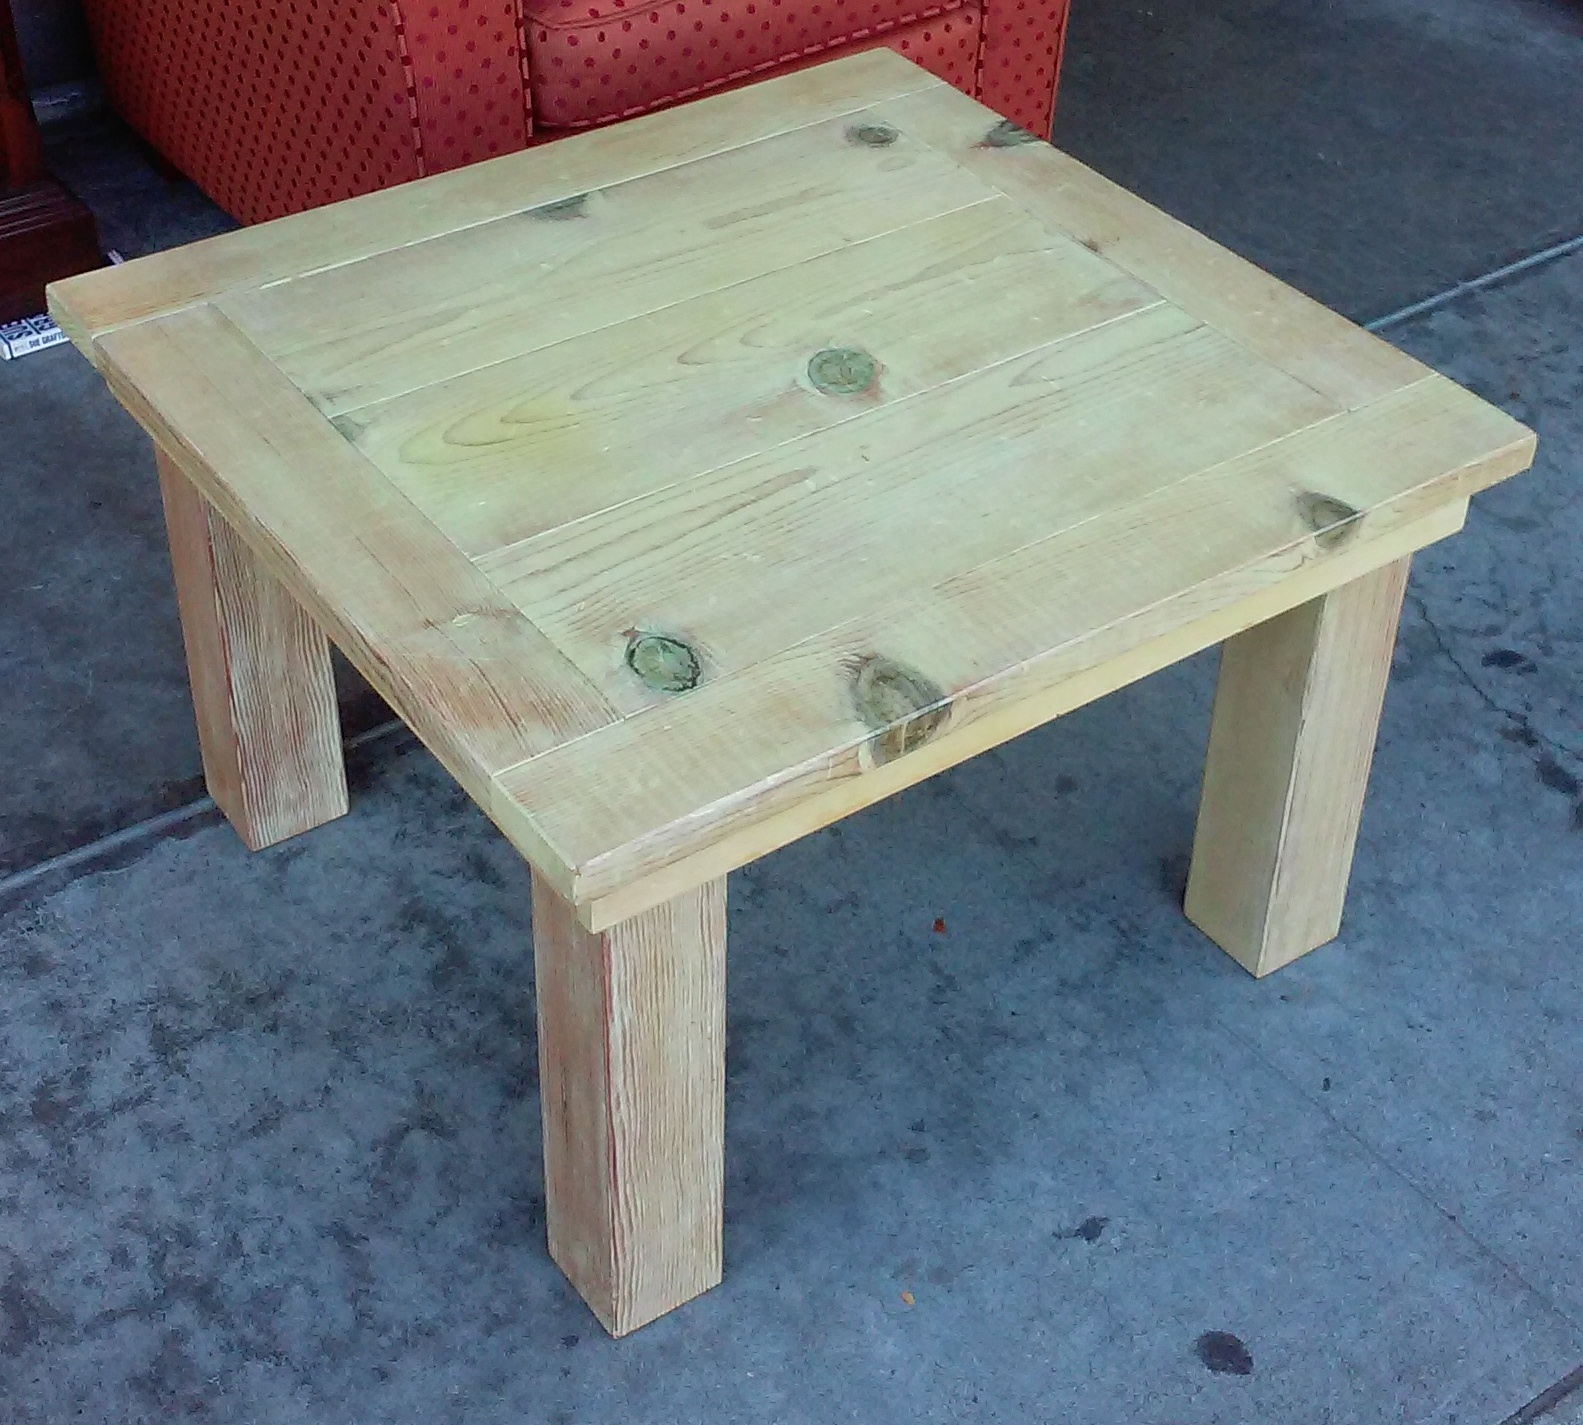 SOLD 2.5u0027 X 2u0027 Knotty Pine End Table   $25